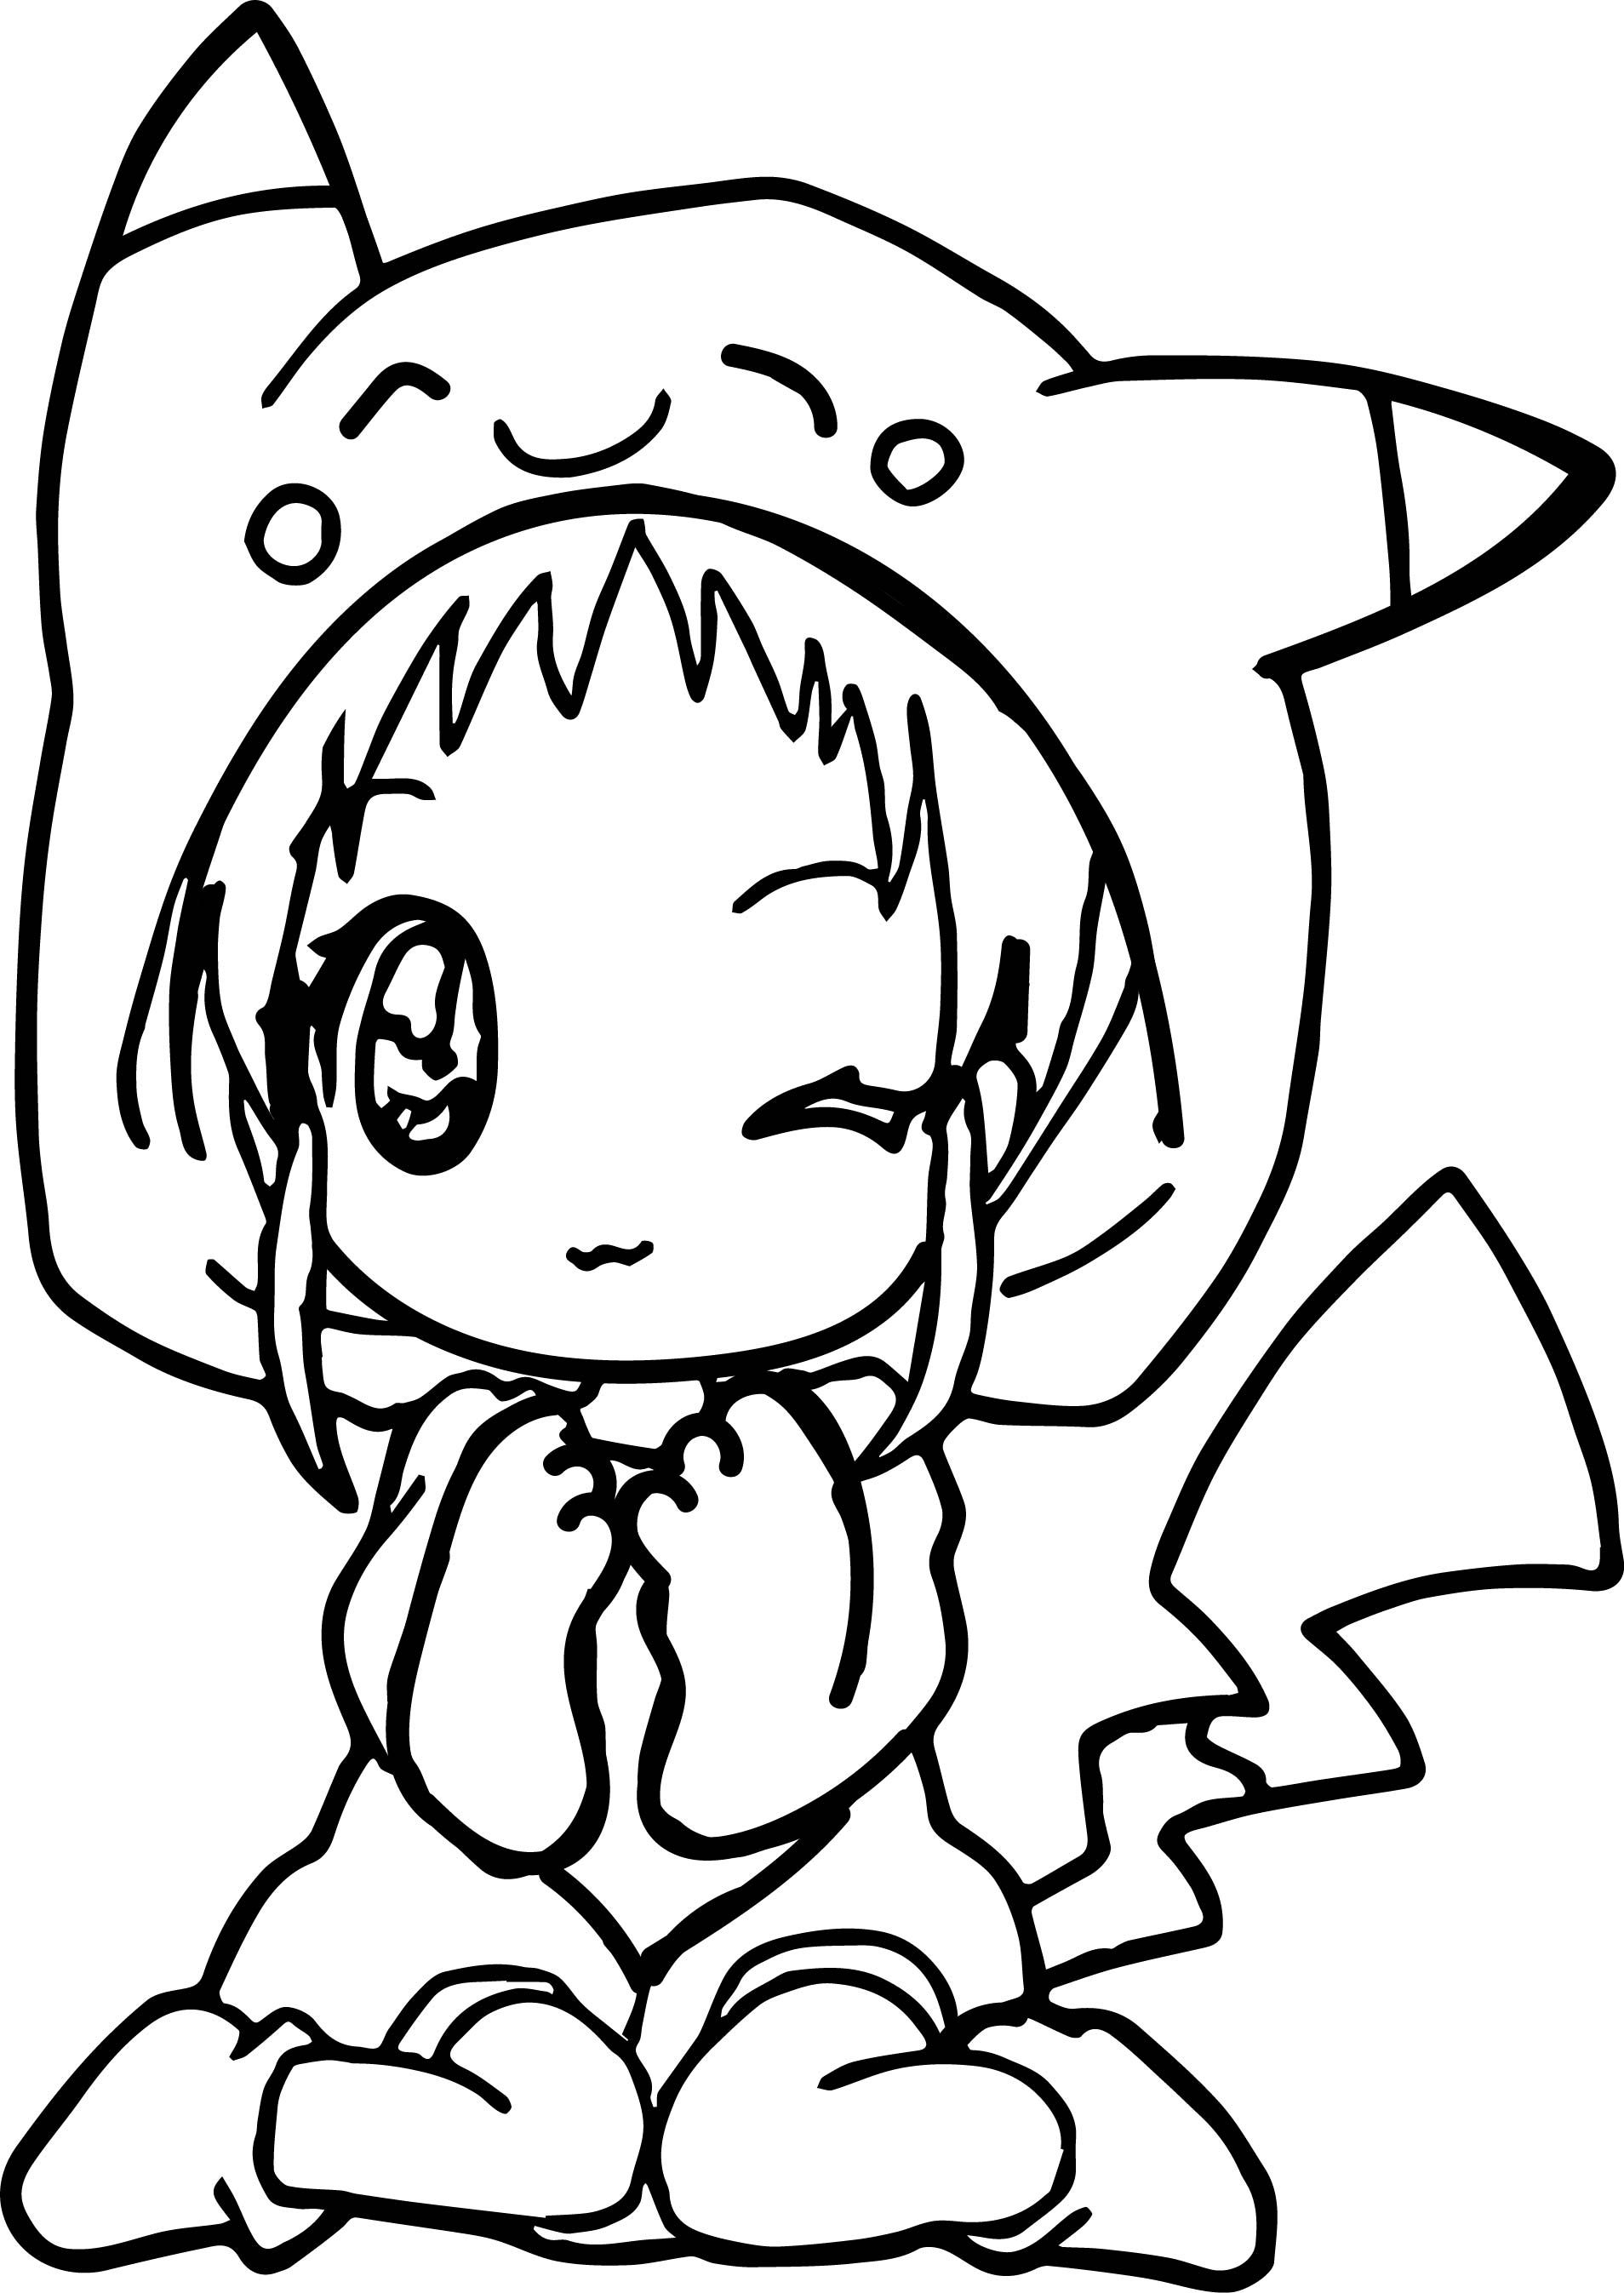 Kawaii Anime Coloring Pages : kawaii, anime, coloring, pages, Kawaii, Anime, Coloring, Pages, Cinebrique